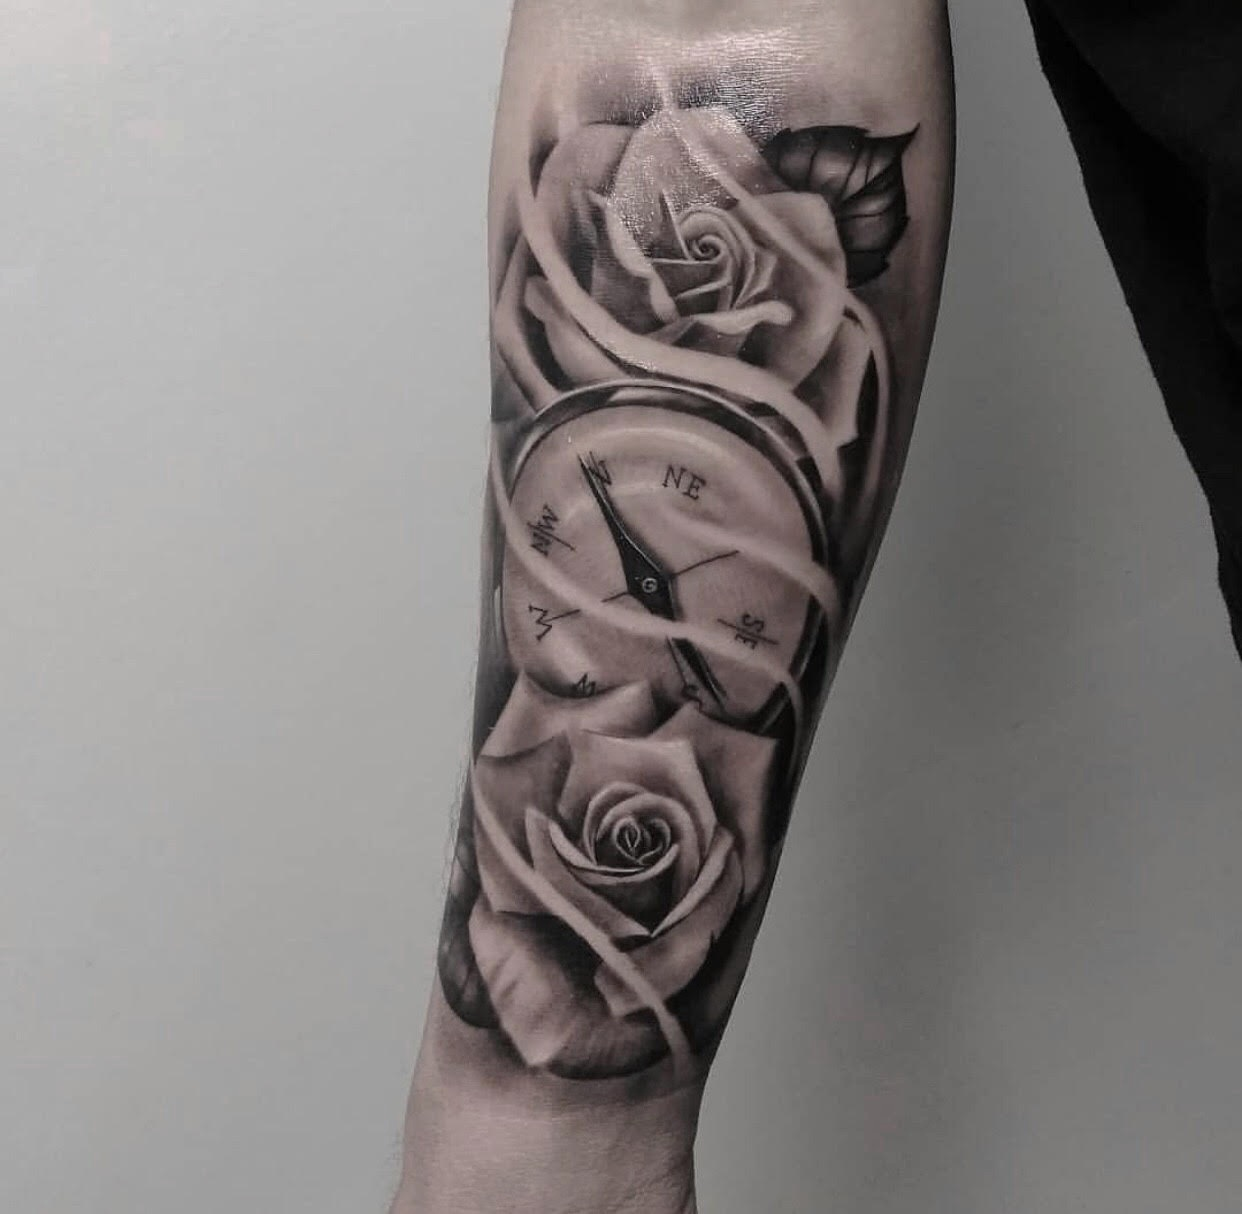 Custom-black-and-grey-Roses and Compass tattoo-by-+Bryan+Alfaro+at-certified-customs-denver-co-5.jpg